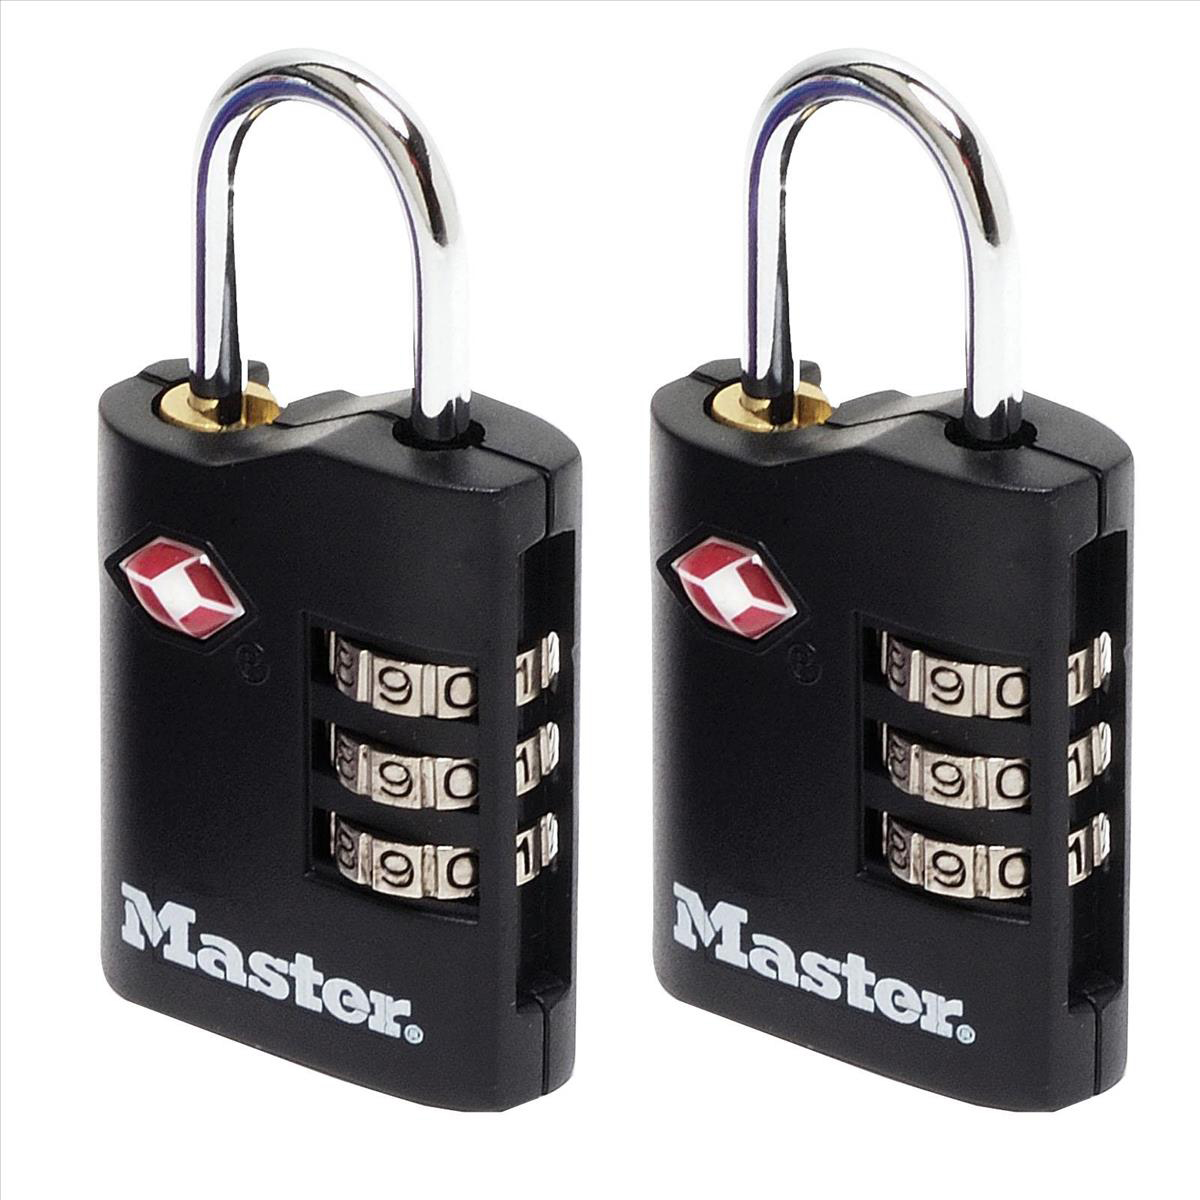 Masterlock Combination Padlock TSA Certified Ref 4680DBLK Pack 2